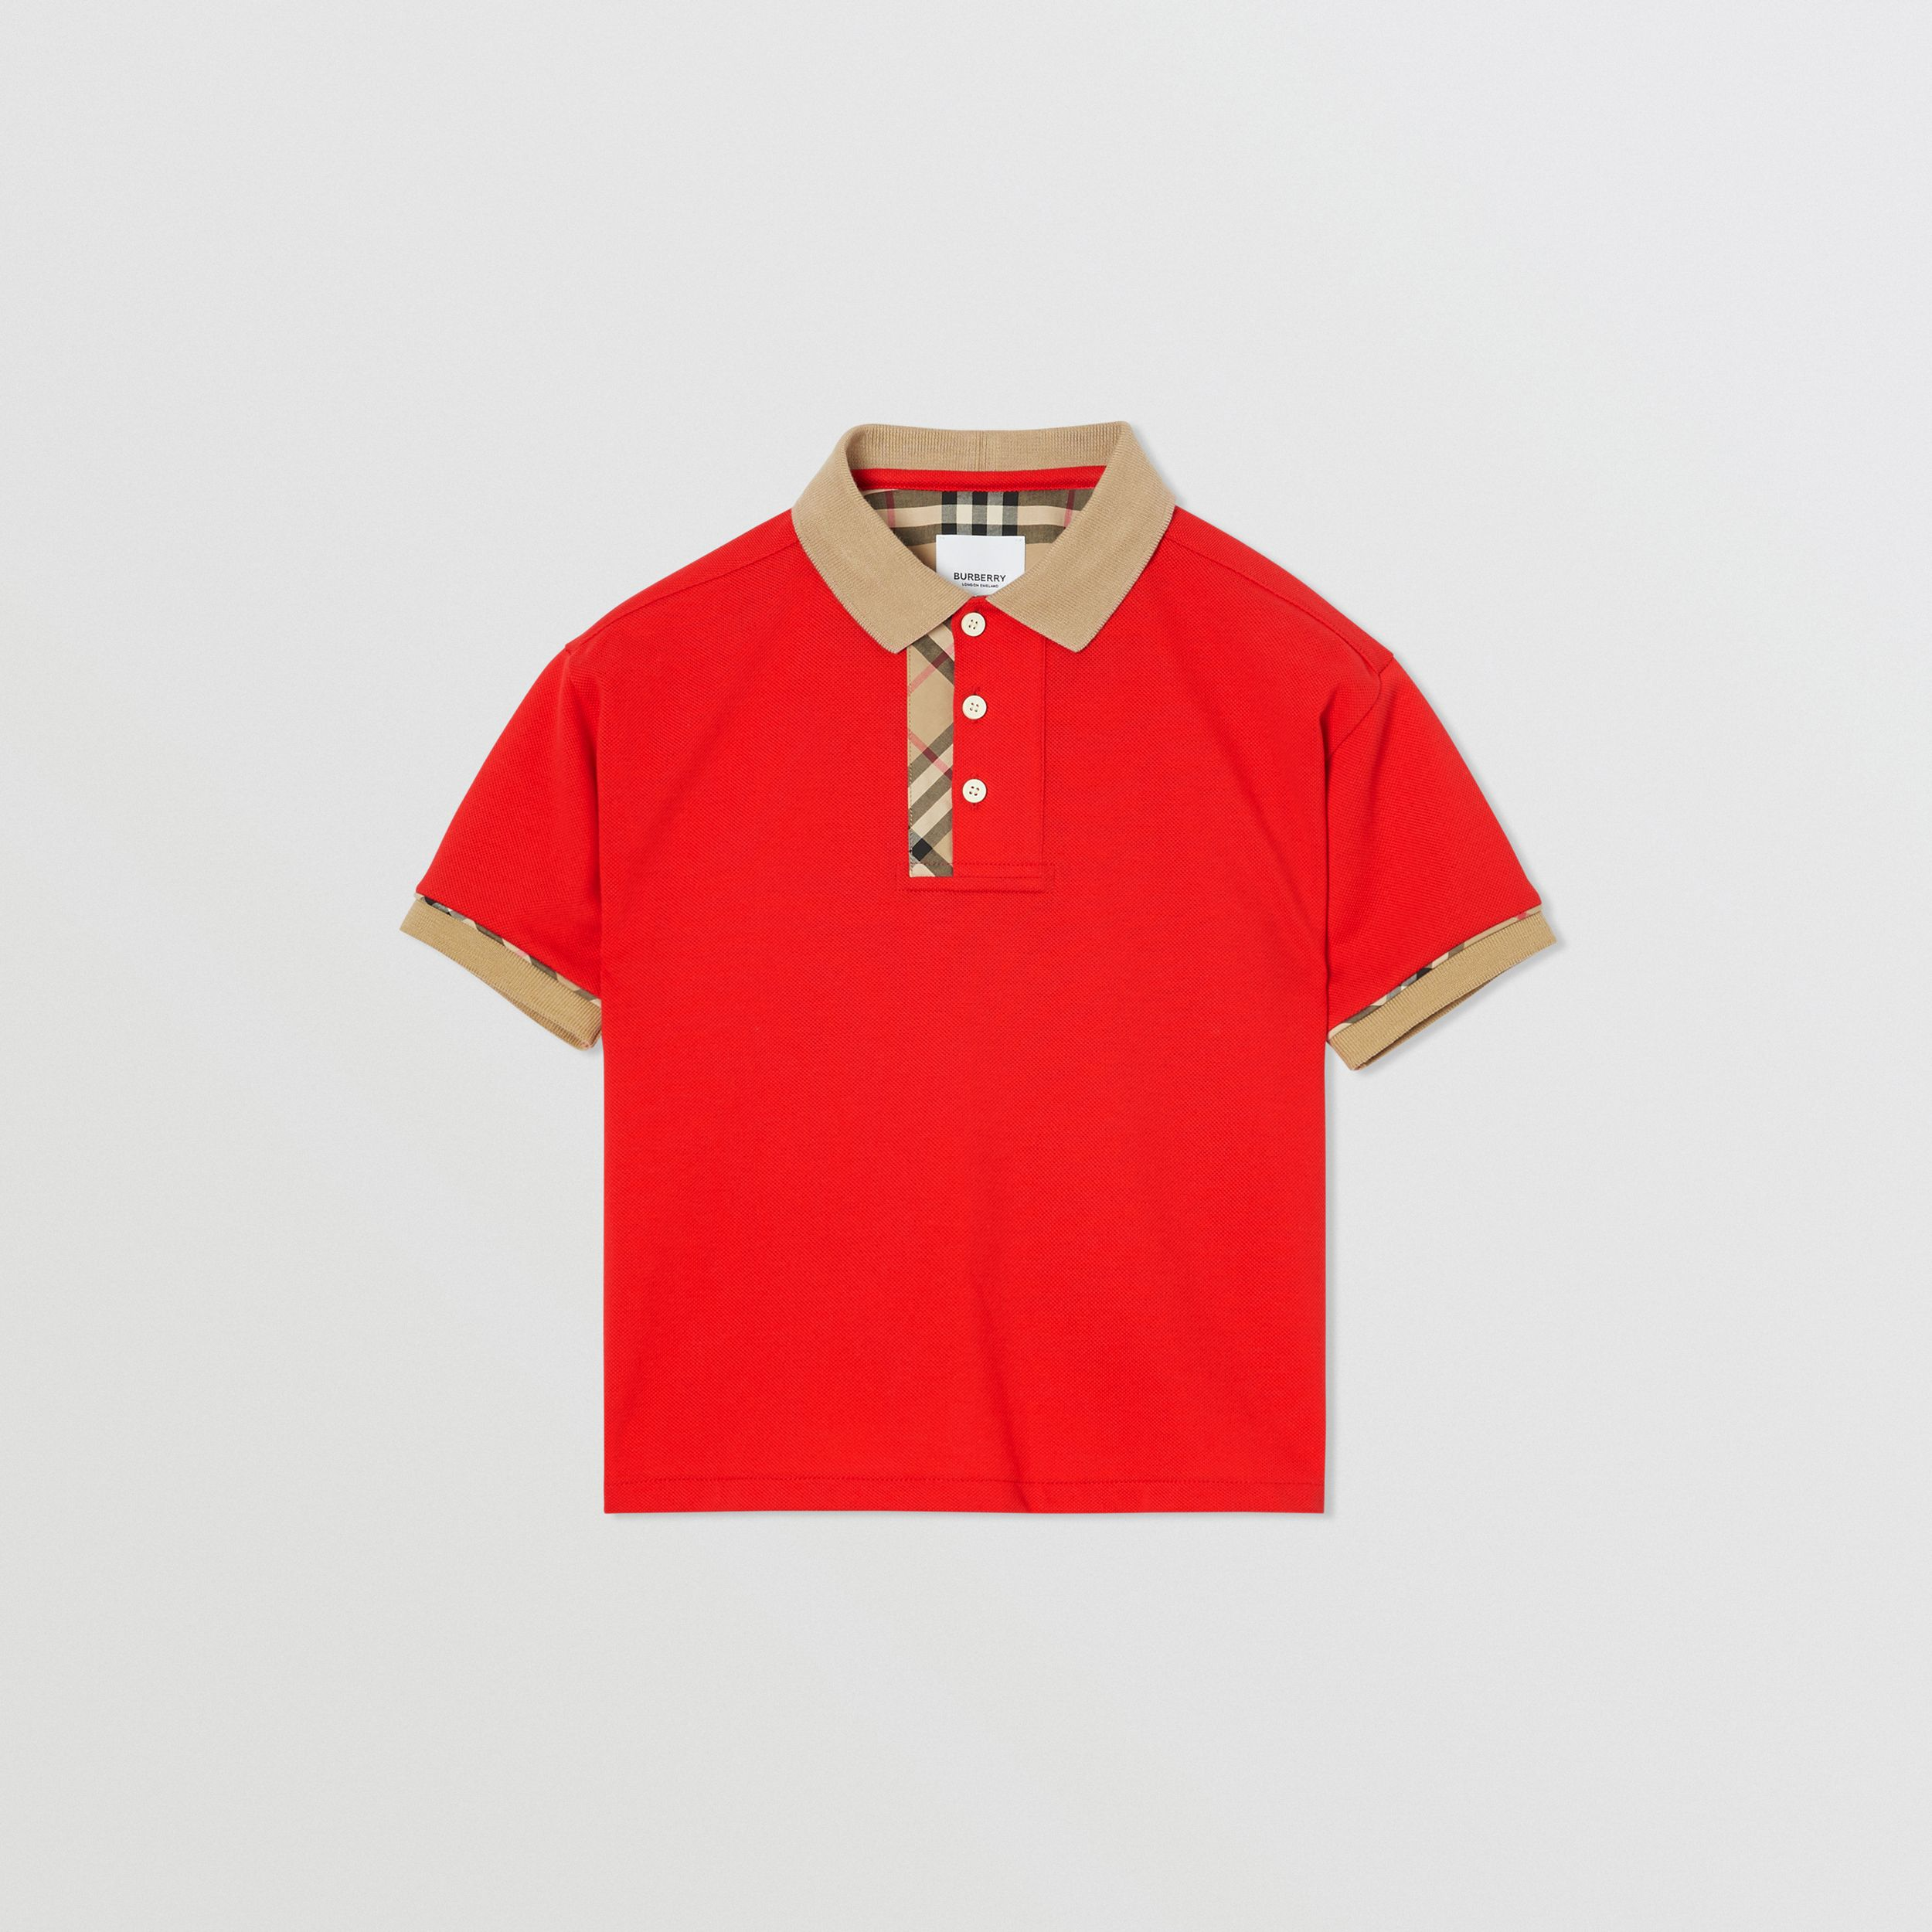 Vintage Check Trim Cotton Polo Shirt in Bright Red | Burberry Canada - 1